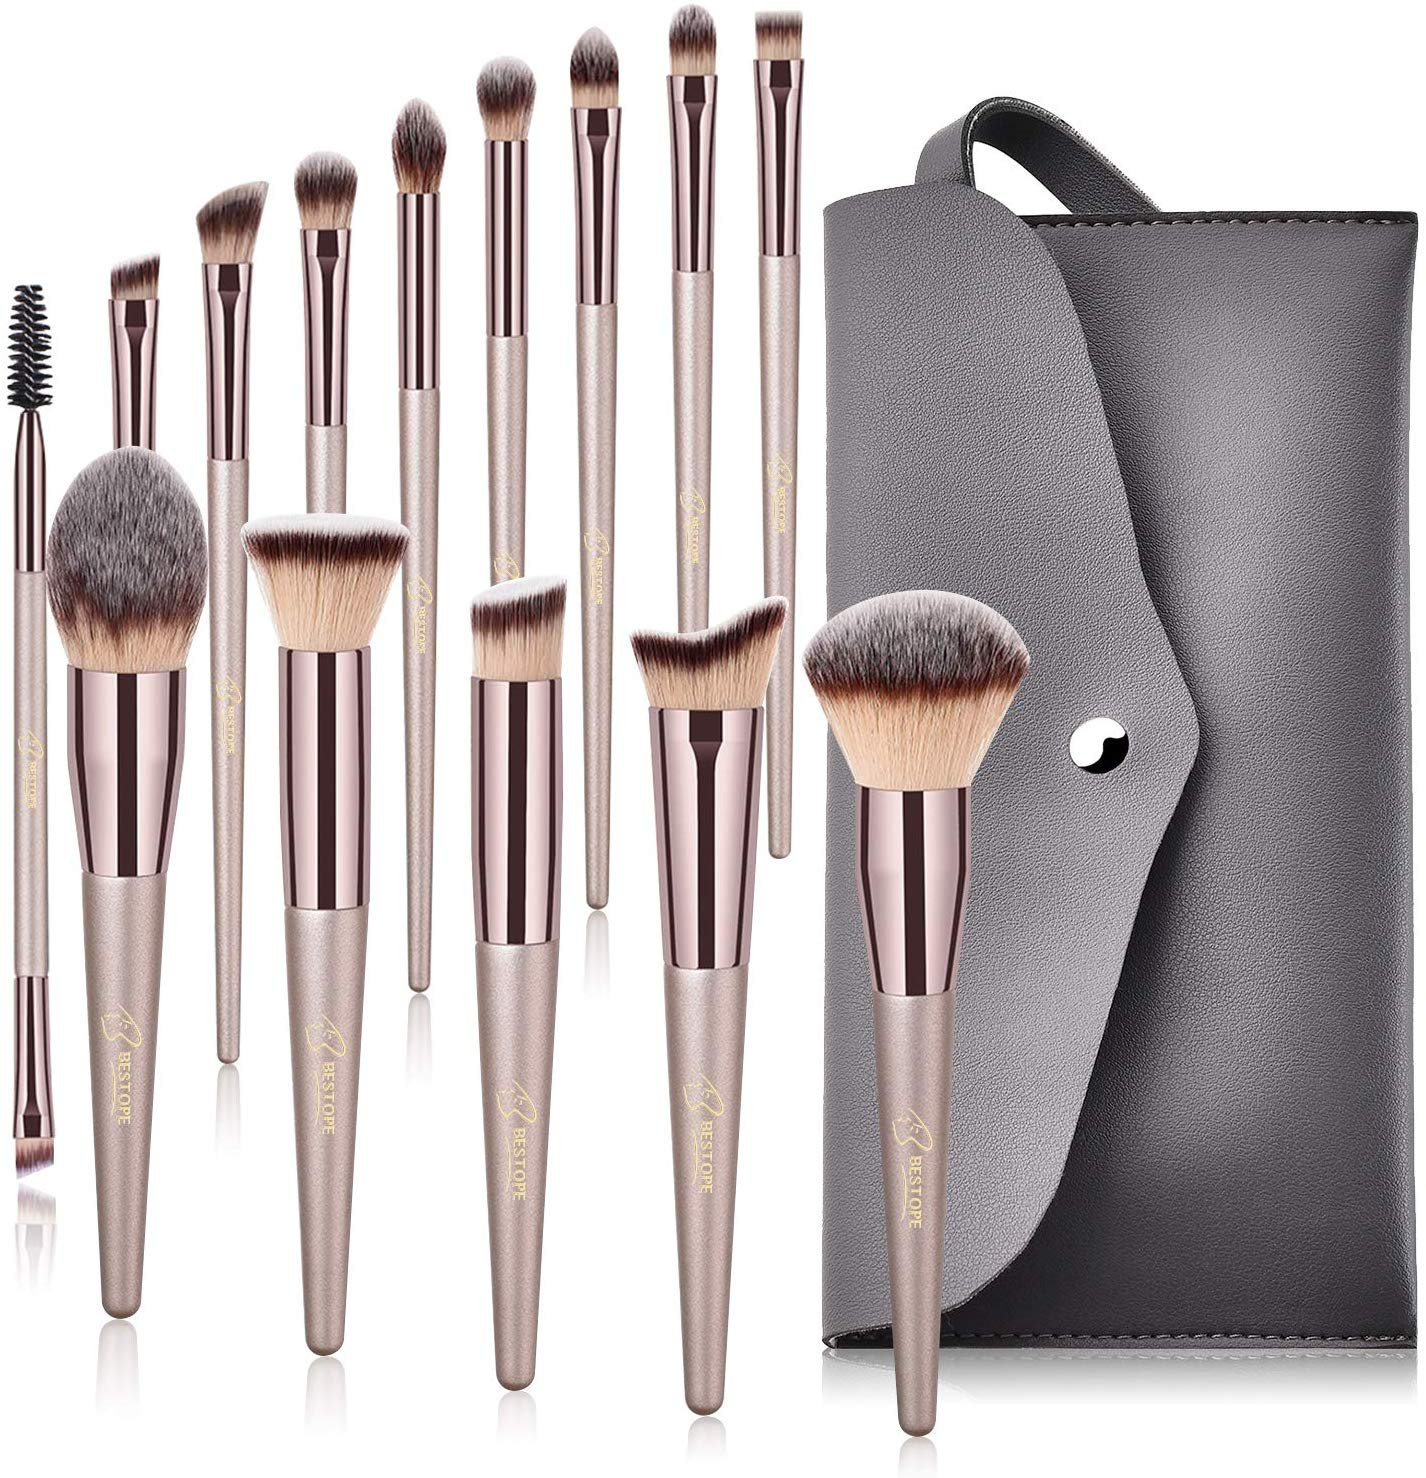 Makeup Brushes BESTOPE 14 Pcs Premium Synthetic Make up Brushes